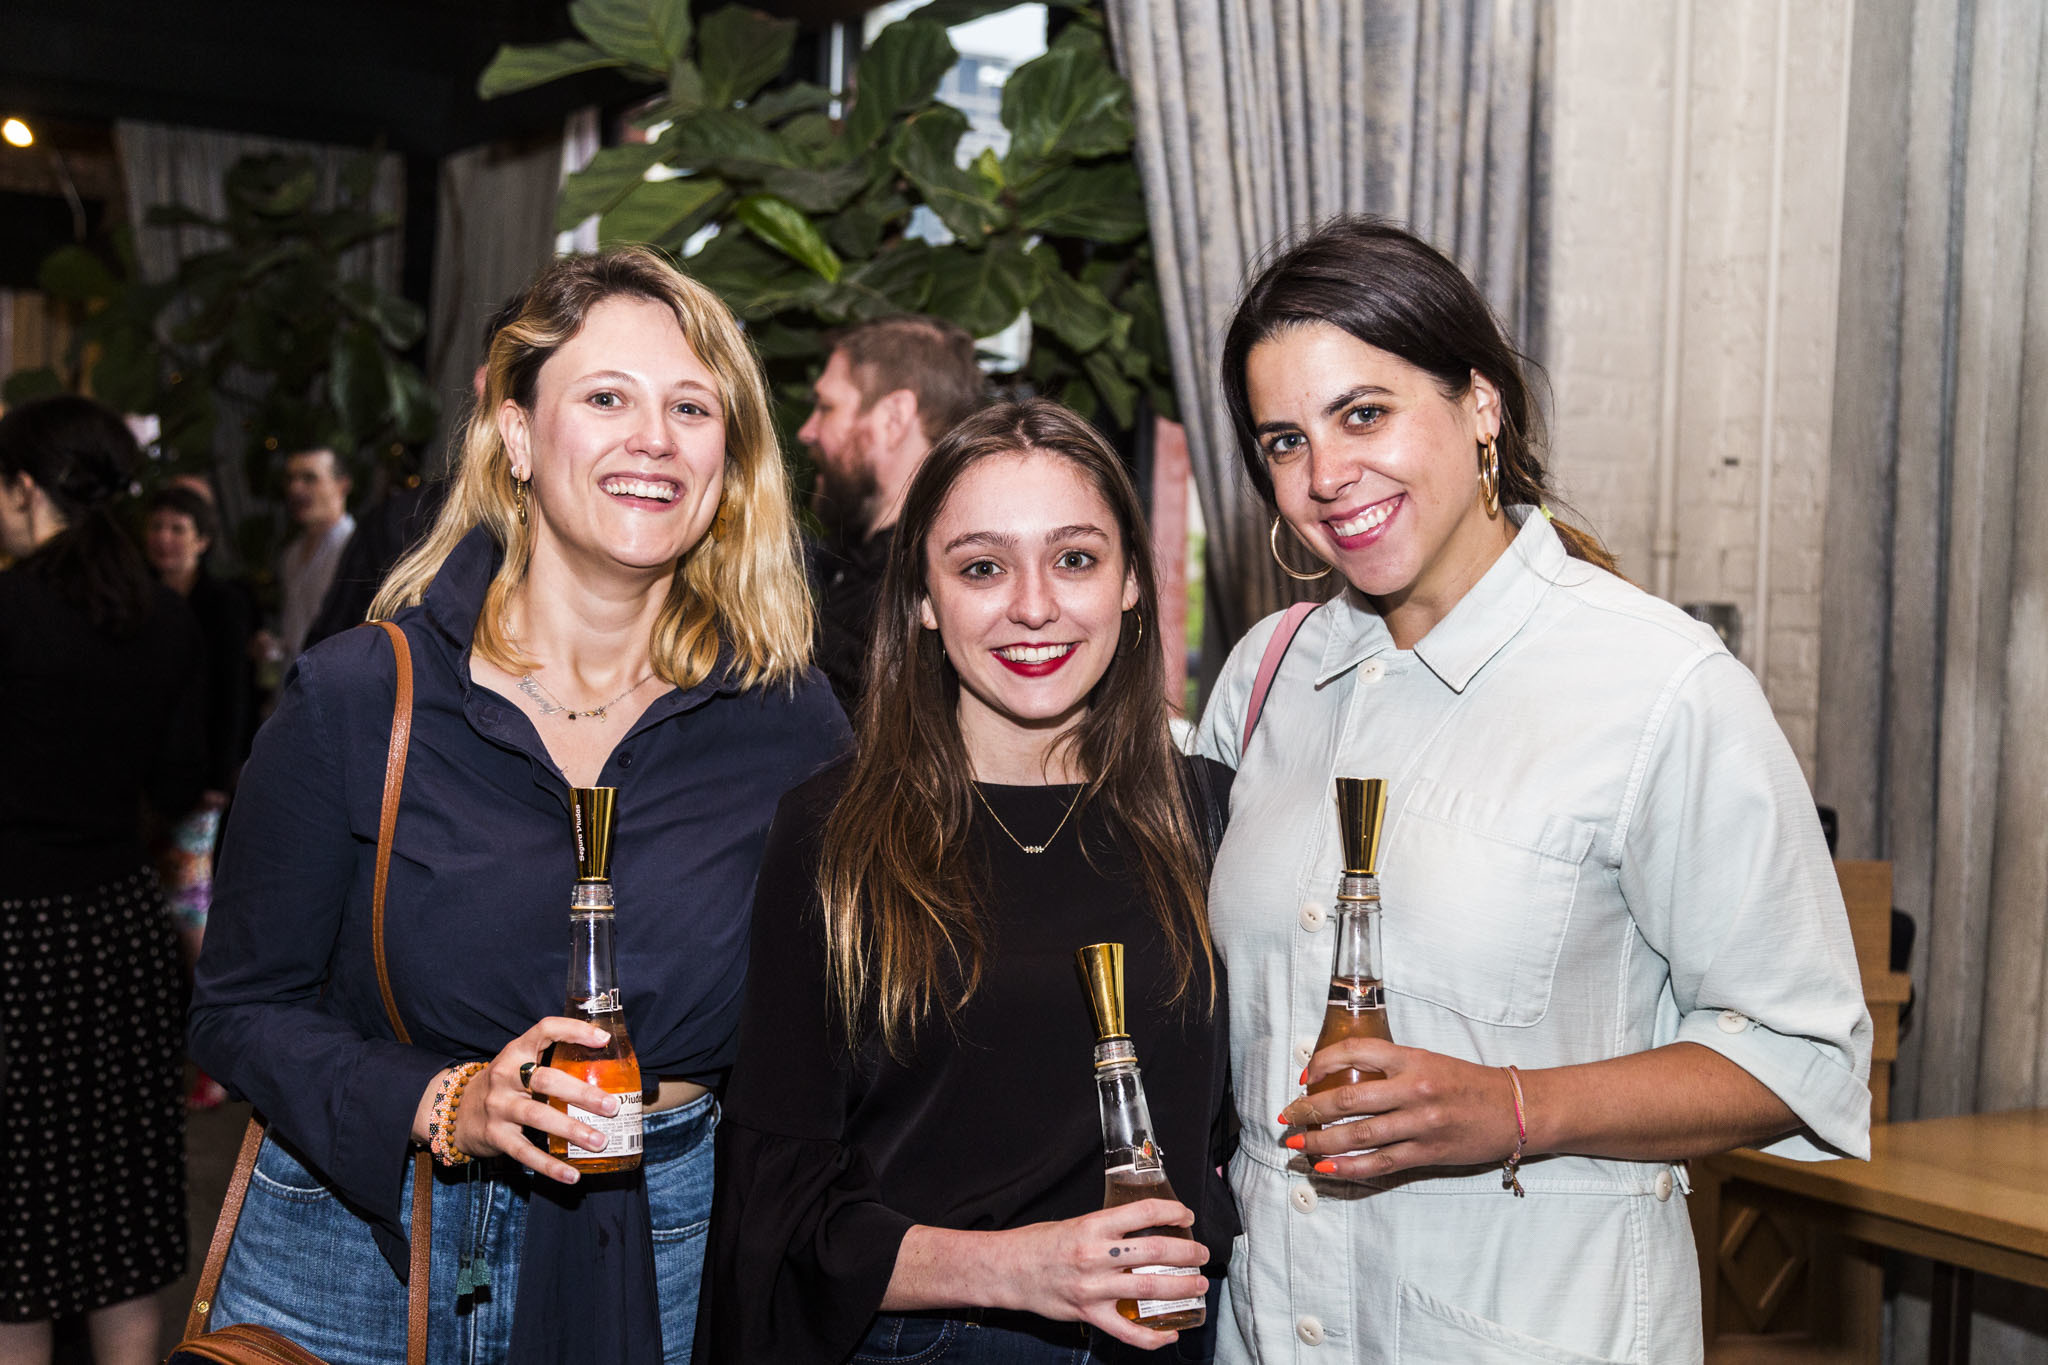 bar awards, 2018, jaclyn rivas